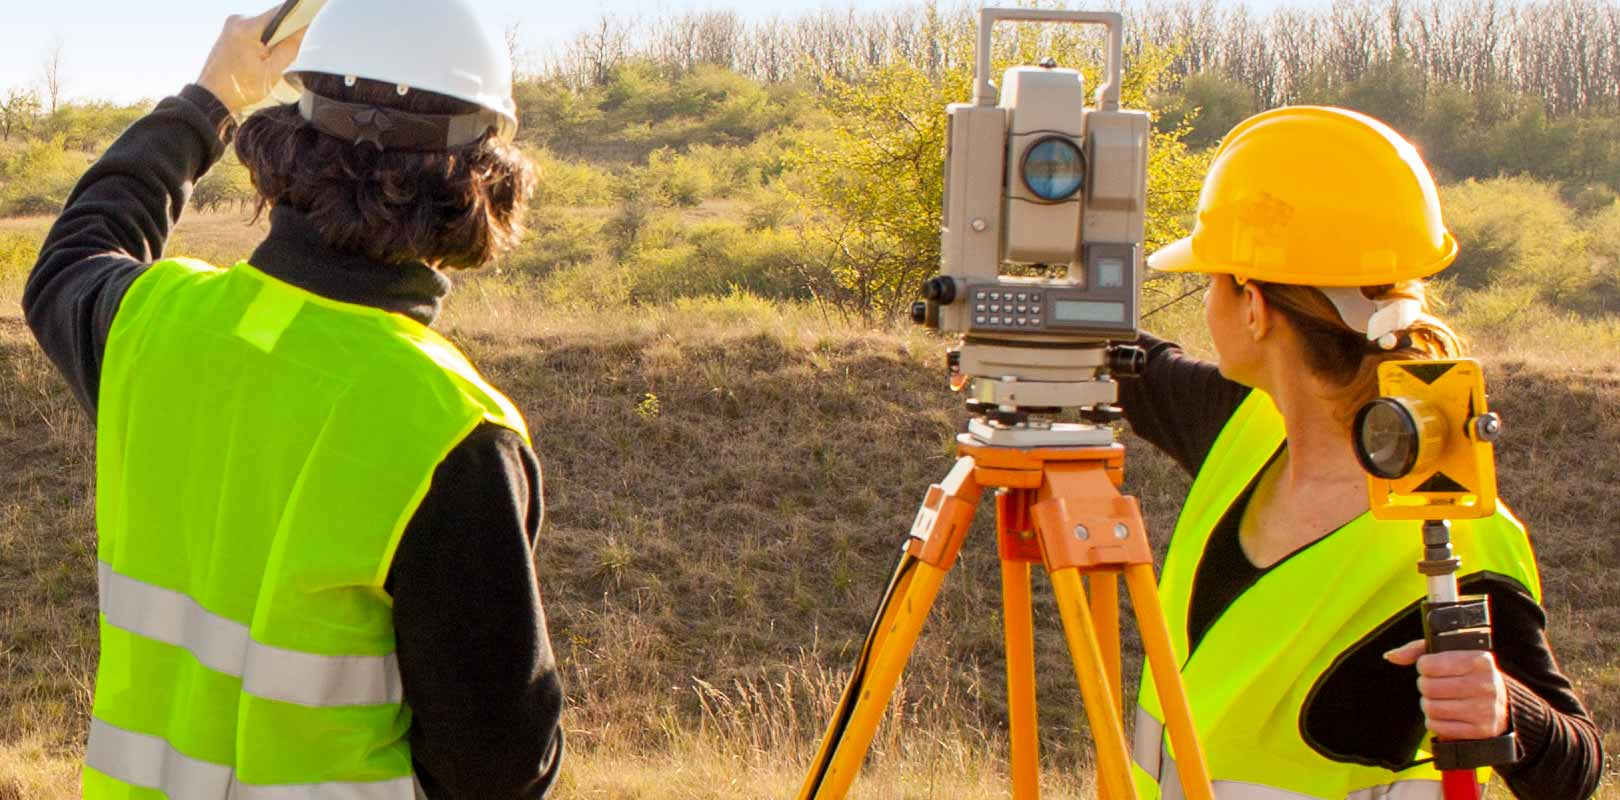 Surveyors surveying land for property development